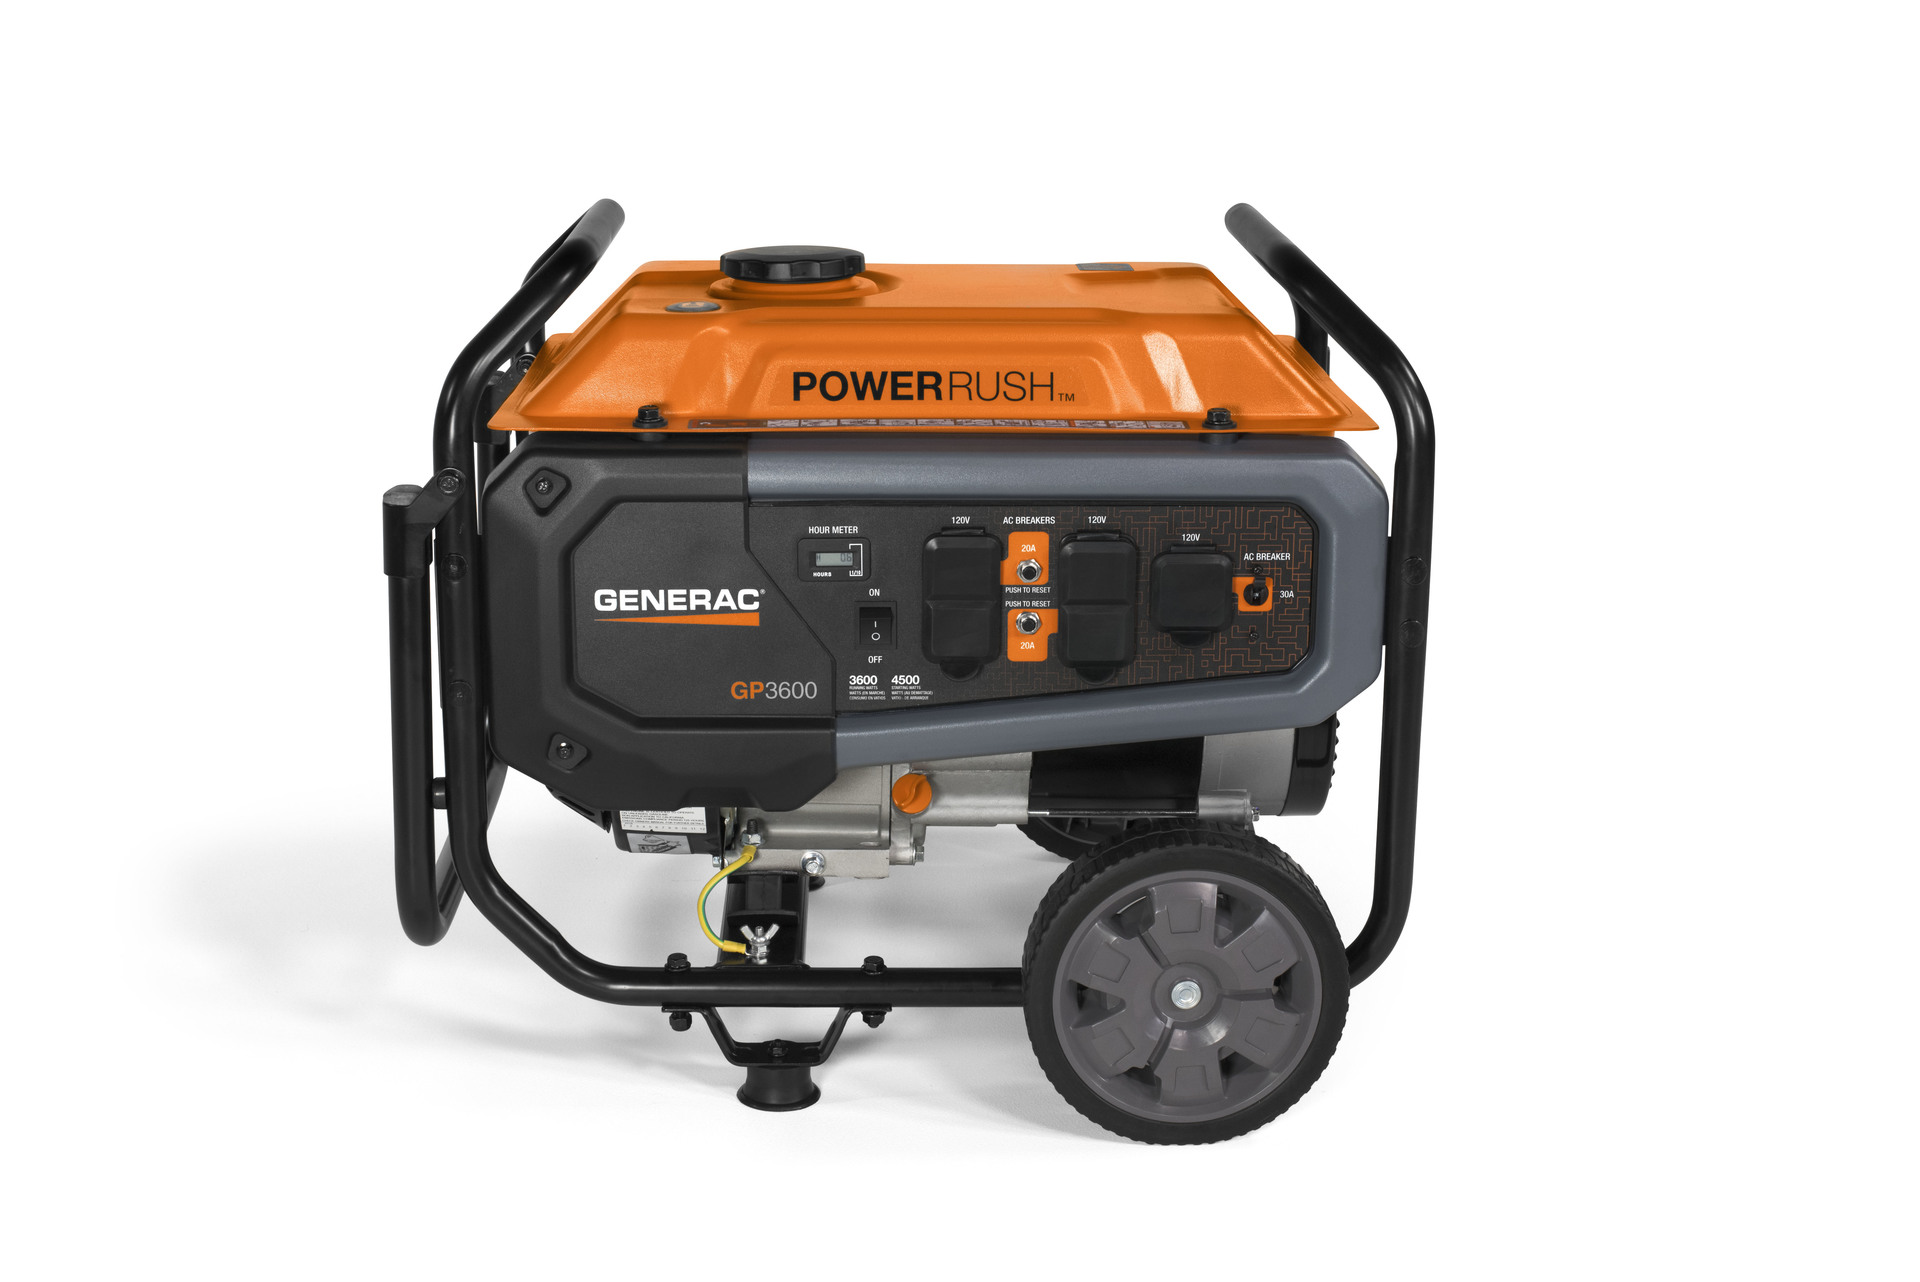 Shop Generac Gp Series 3600 Running Watt Portable Generator With Wiring Diagram And Parts List For Generatorparts Gp3600 Press Enter To Zoom In Out